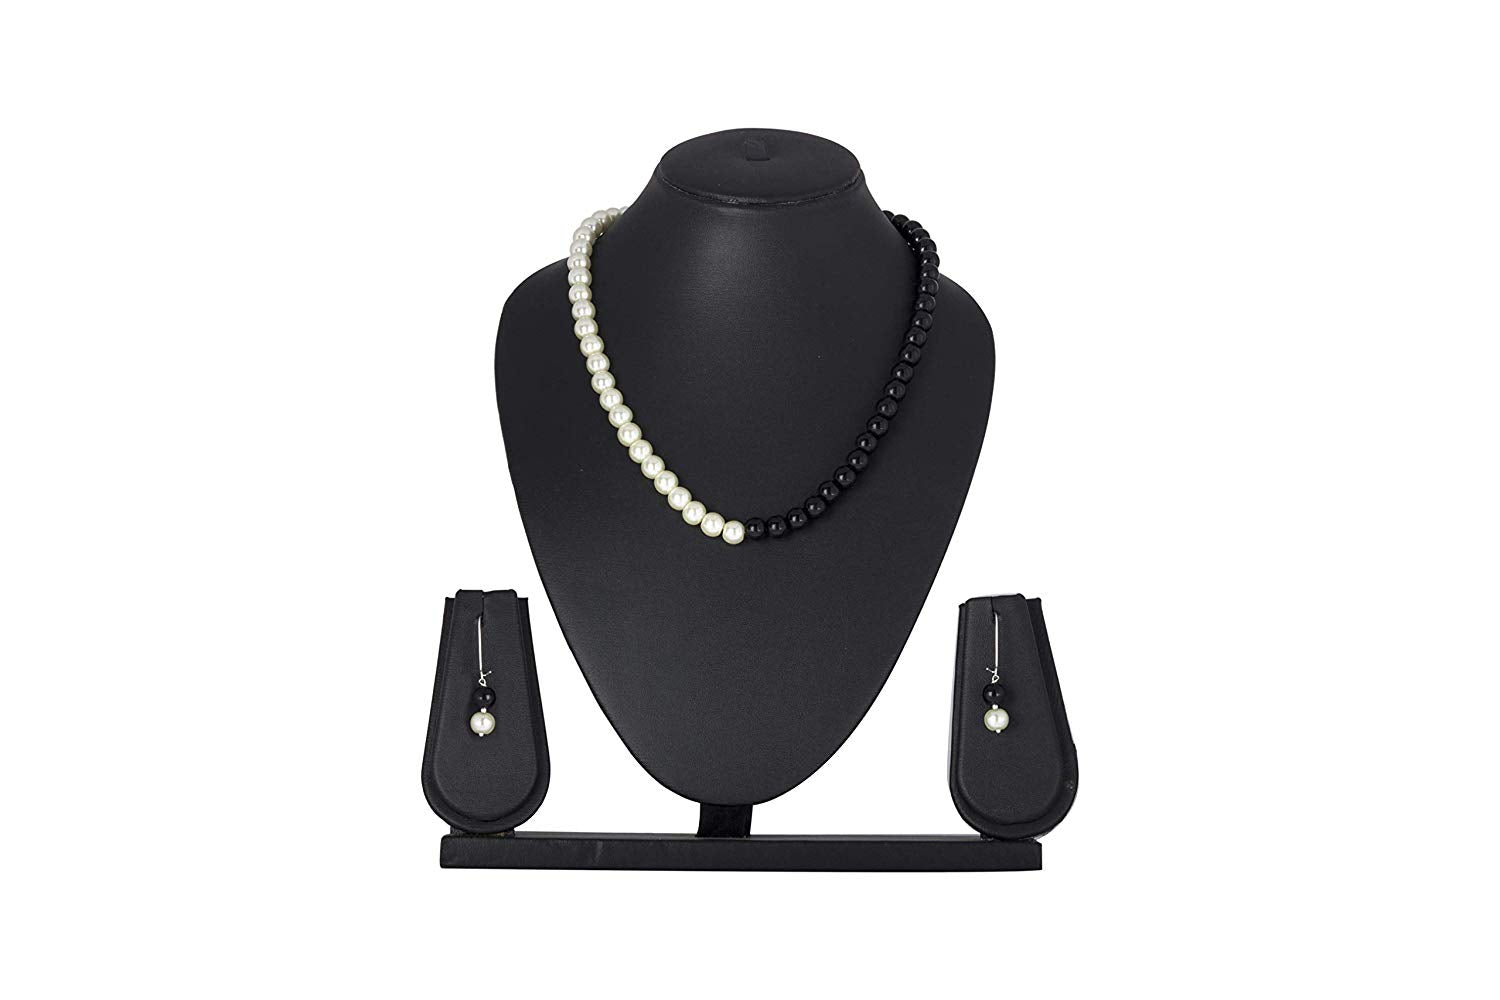 JFL - Jewellery for Less White Pearl & Black Beads Latest Necklace Set for Women & Girls, Office, Daily Casual Wear.